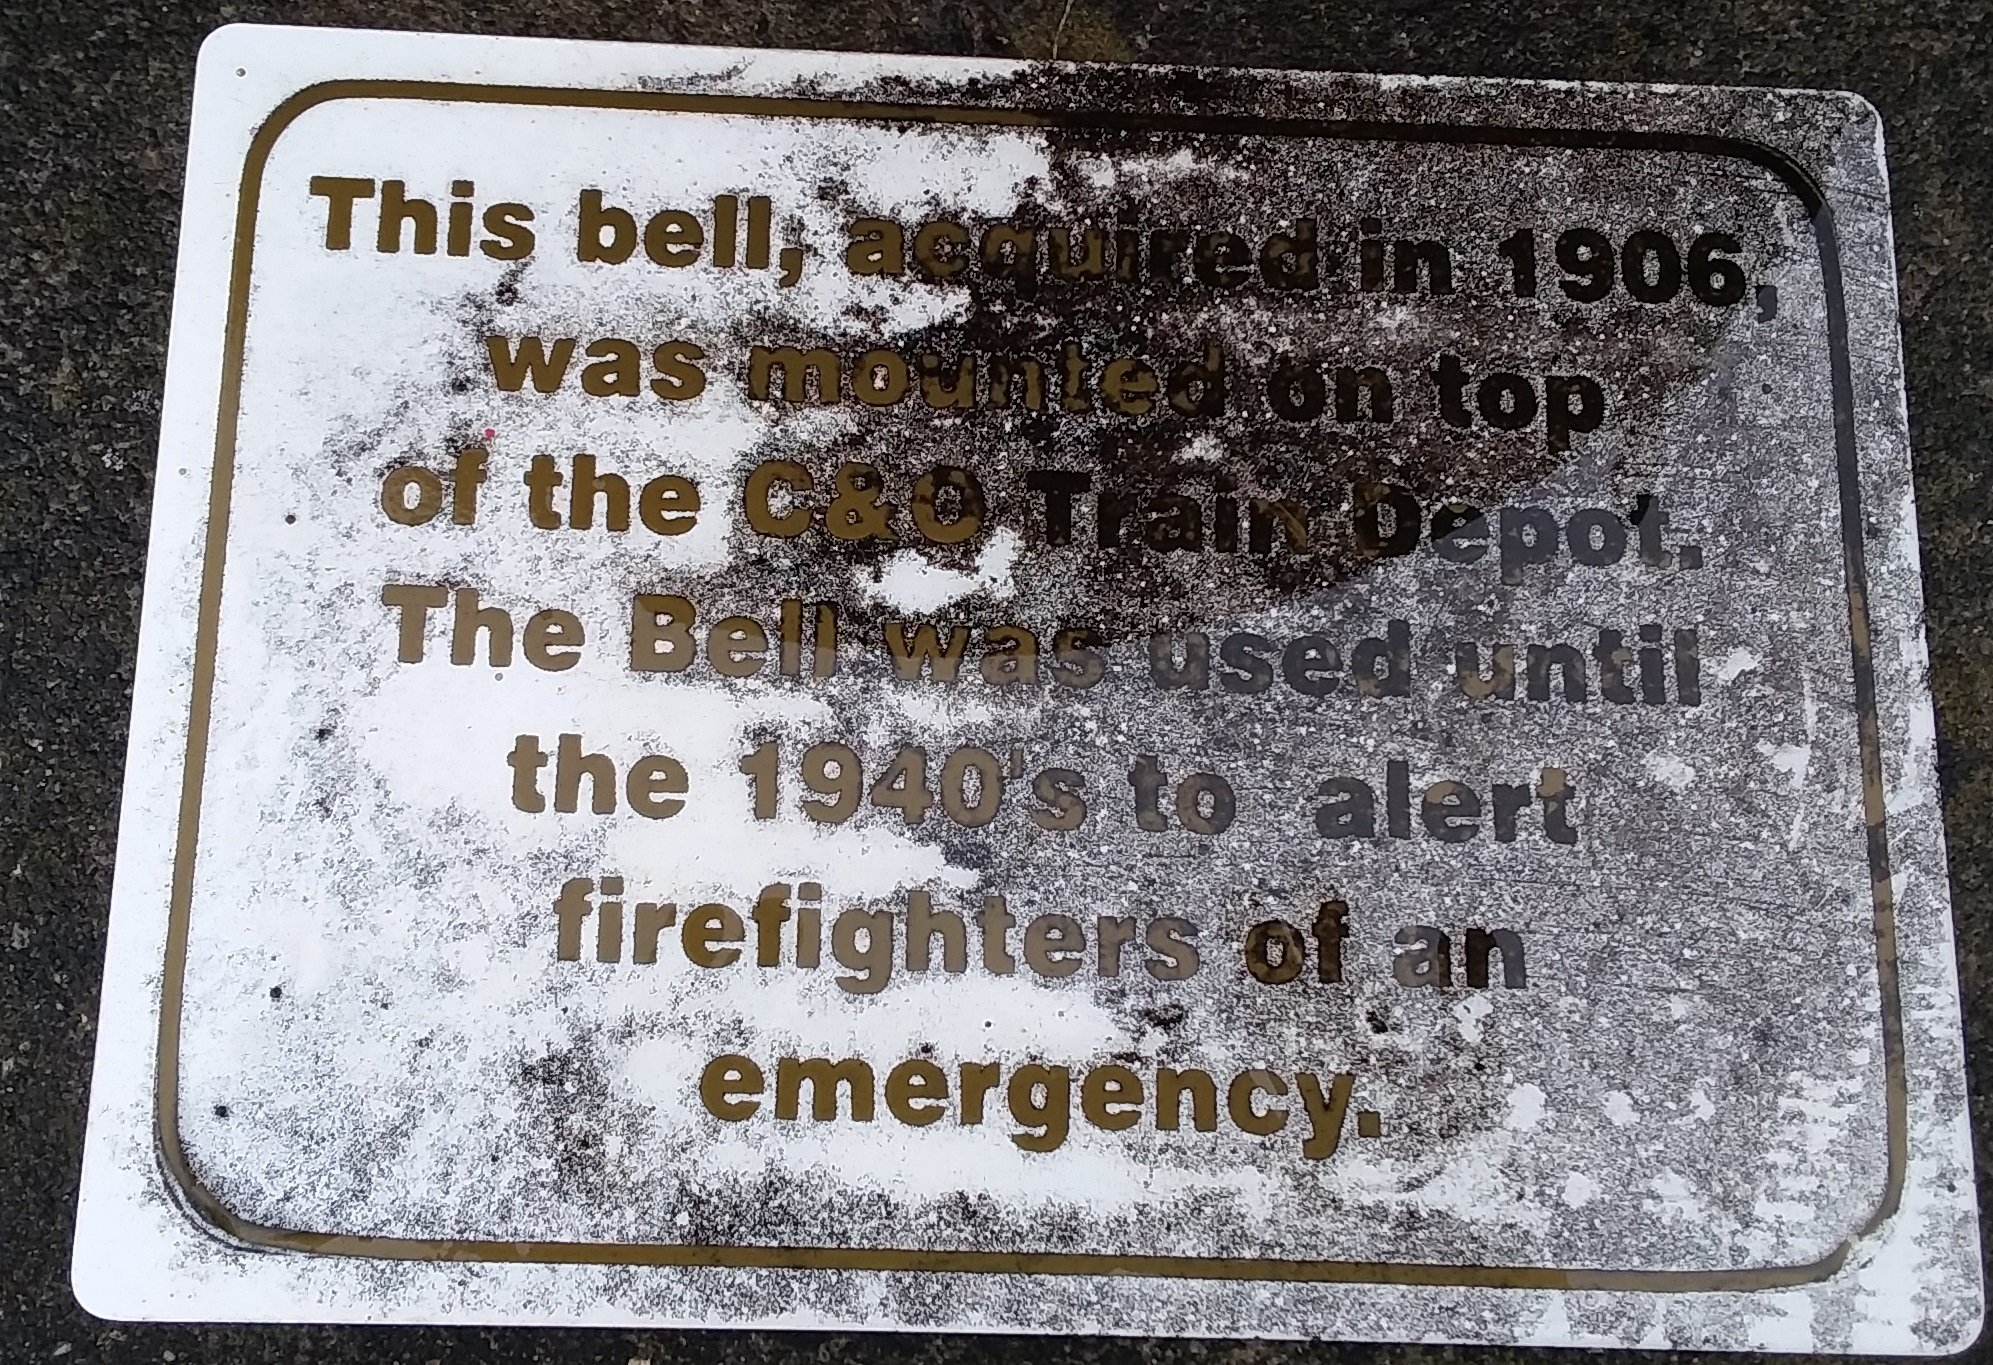 Plaque from the Fire Bell